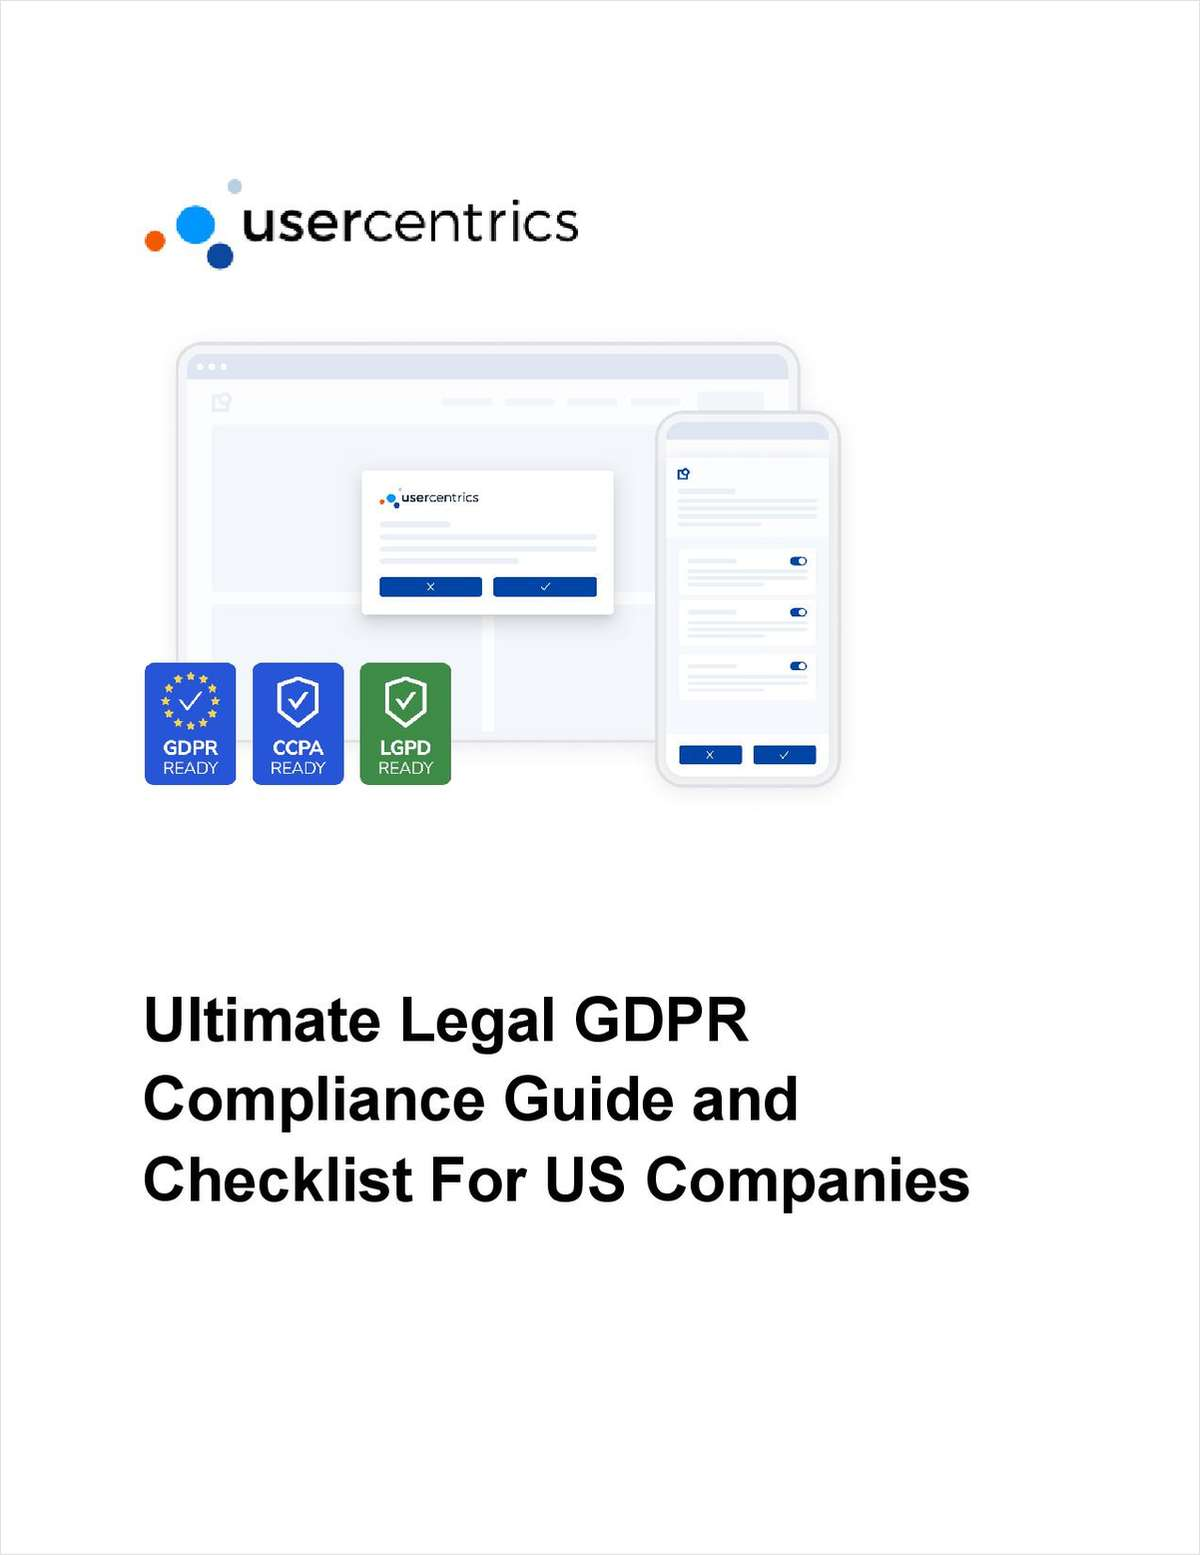 Any company that handles consumer data in regulated ways, and wants to do business in the EU, needs to take compliance seriously. Being GDPR-compliant also puts US companies ahead of the game in ensuring state-by-state compliance at home. Download this ultimate guide to ensure your company has less work and disruption in the future as more regulations are passed.